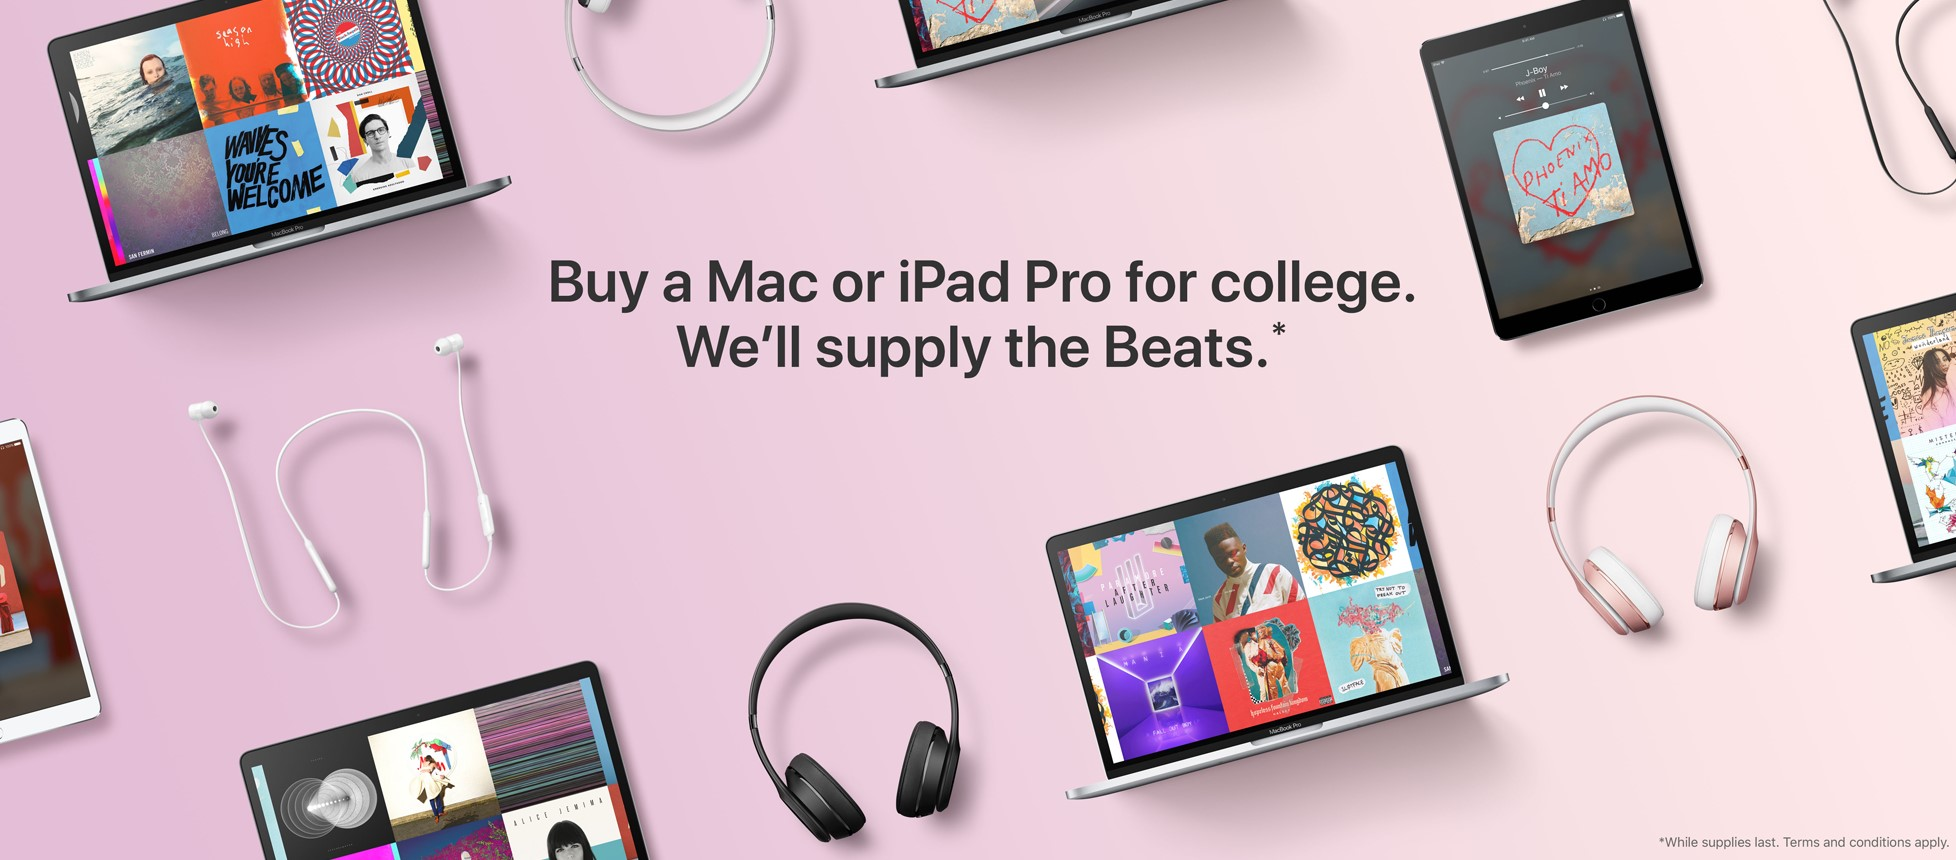 Buy a Mac or iPad Pro for college. We'll supply the Beats* »